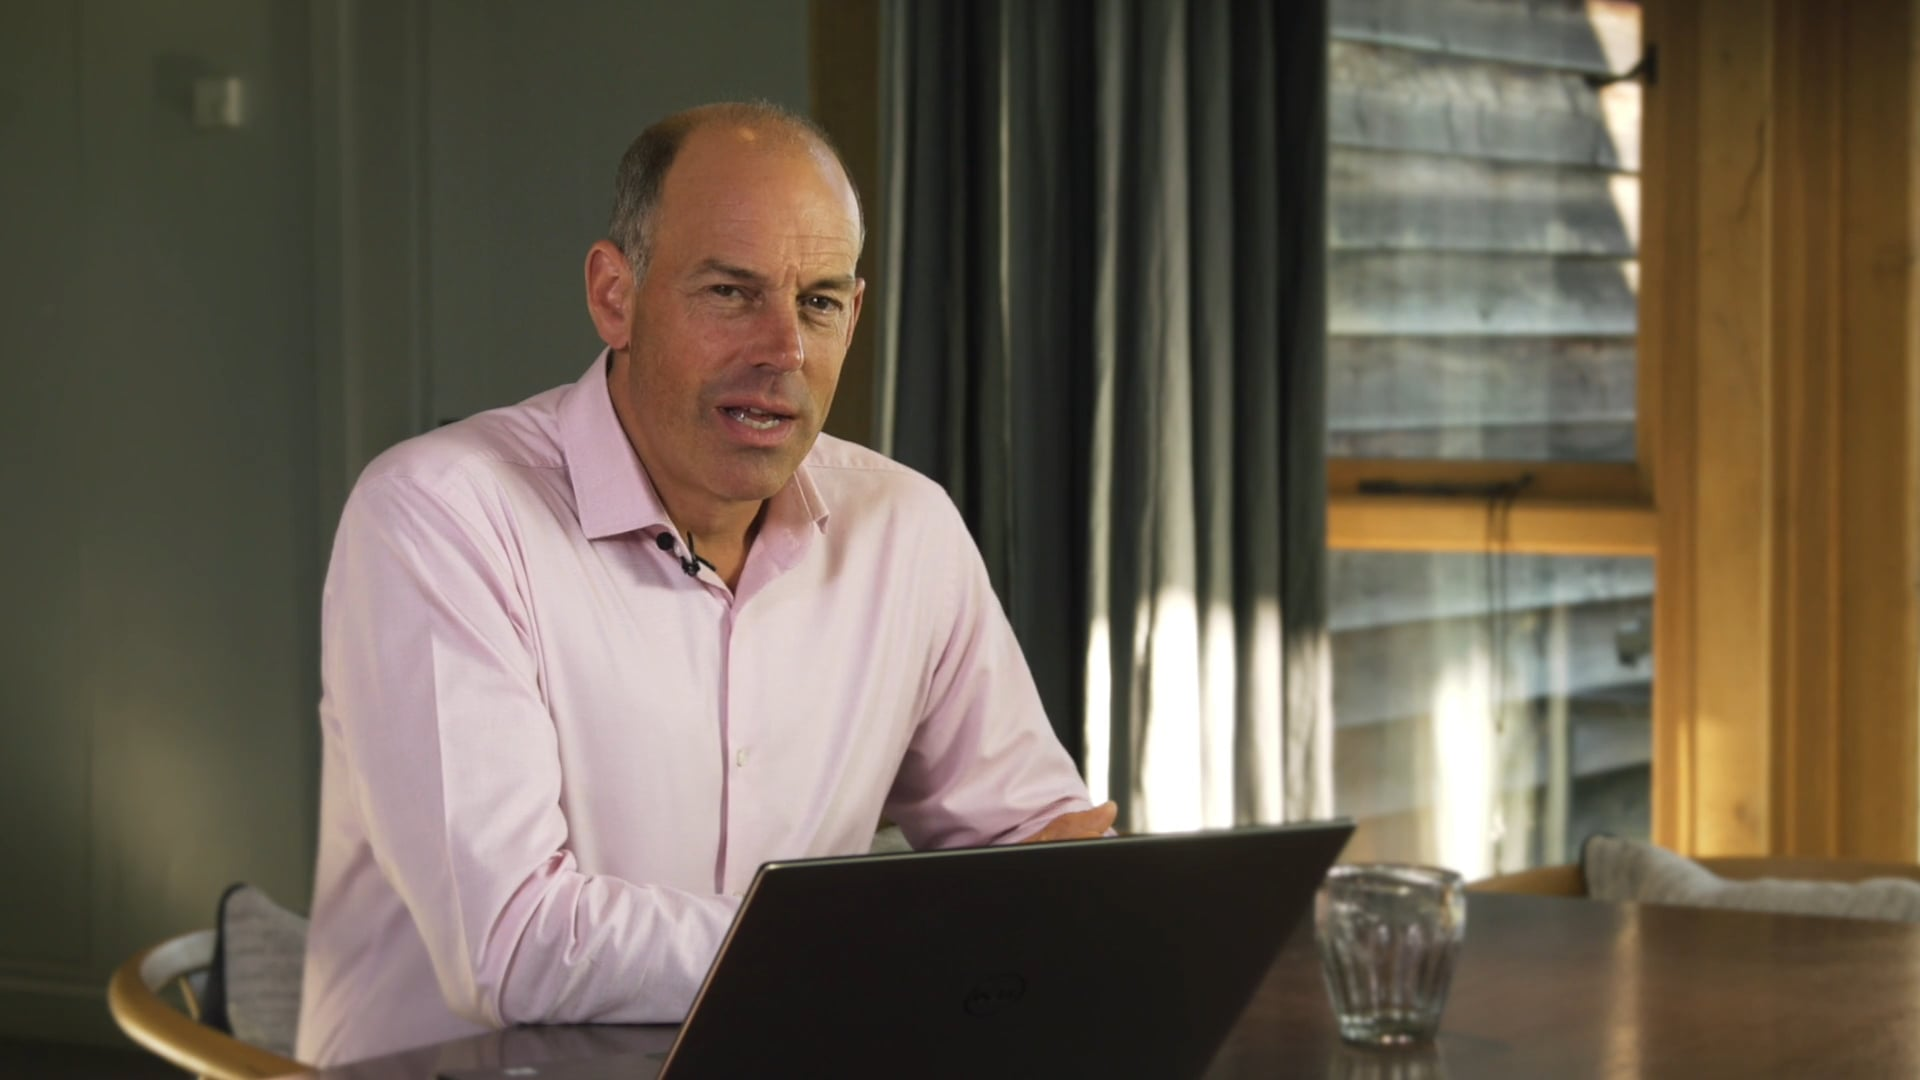 PHIL SPENCER ANSWERS YOUR PROPERTY QUESTIONS